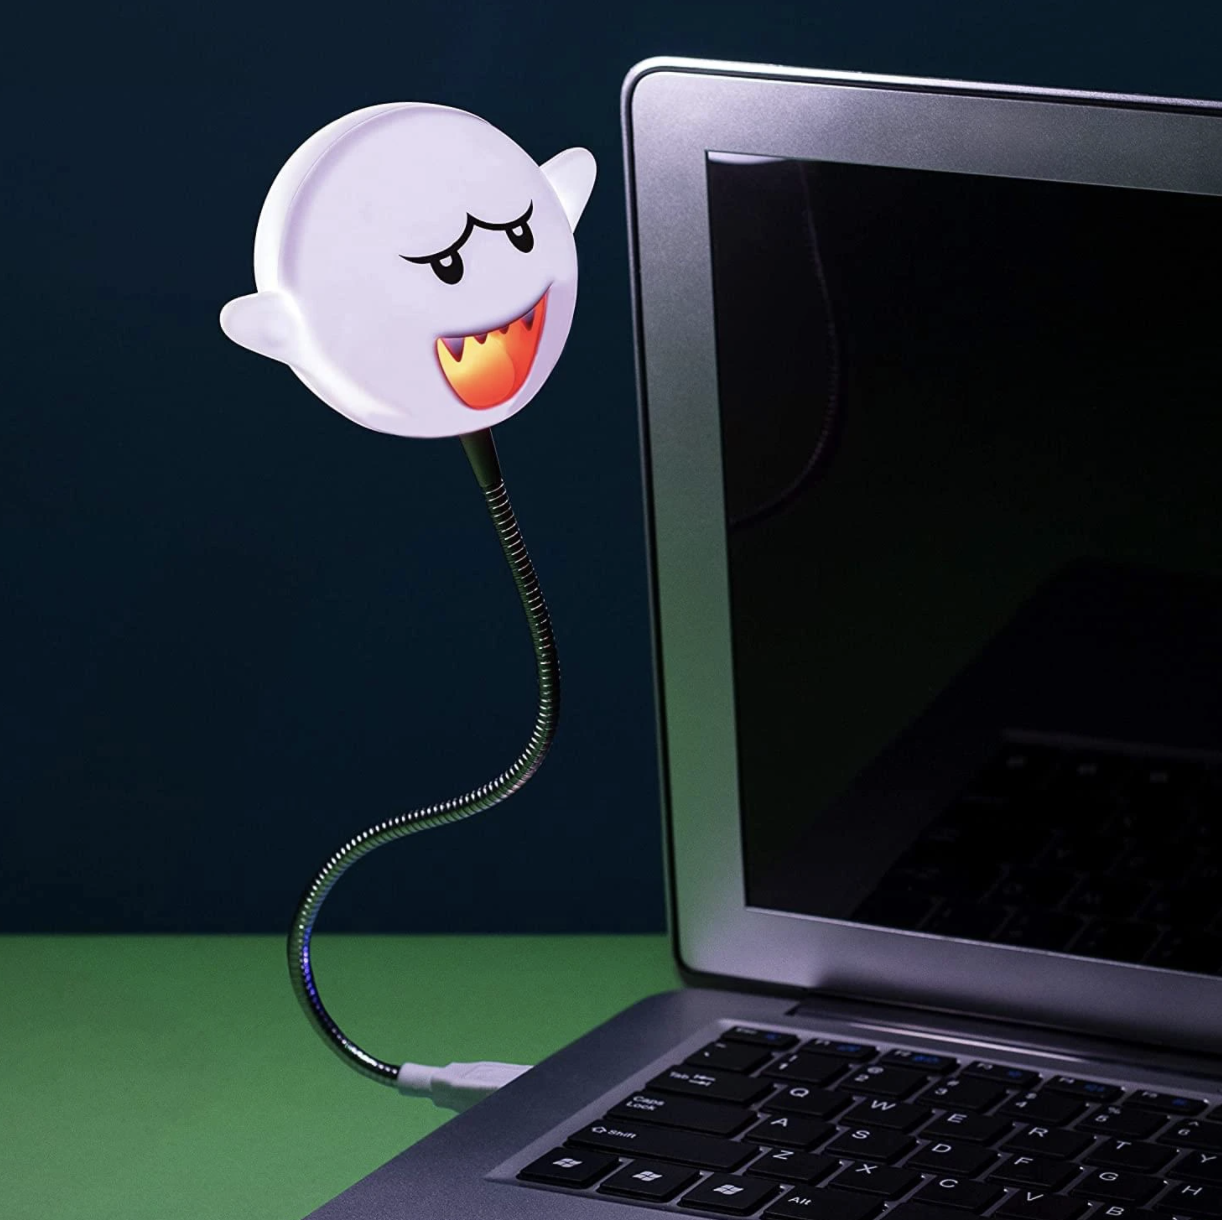 Boo-shaped USB lamp connected to laptop